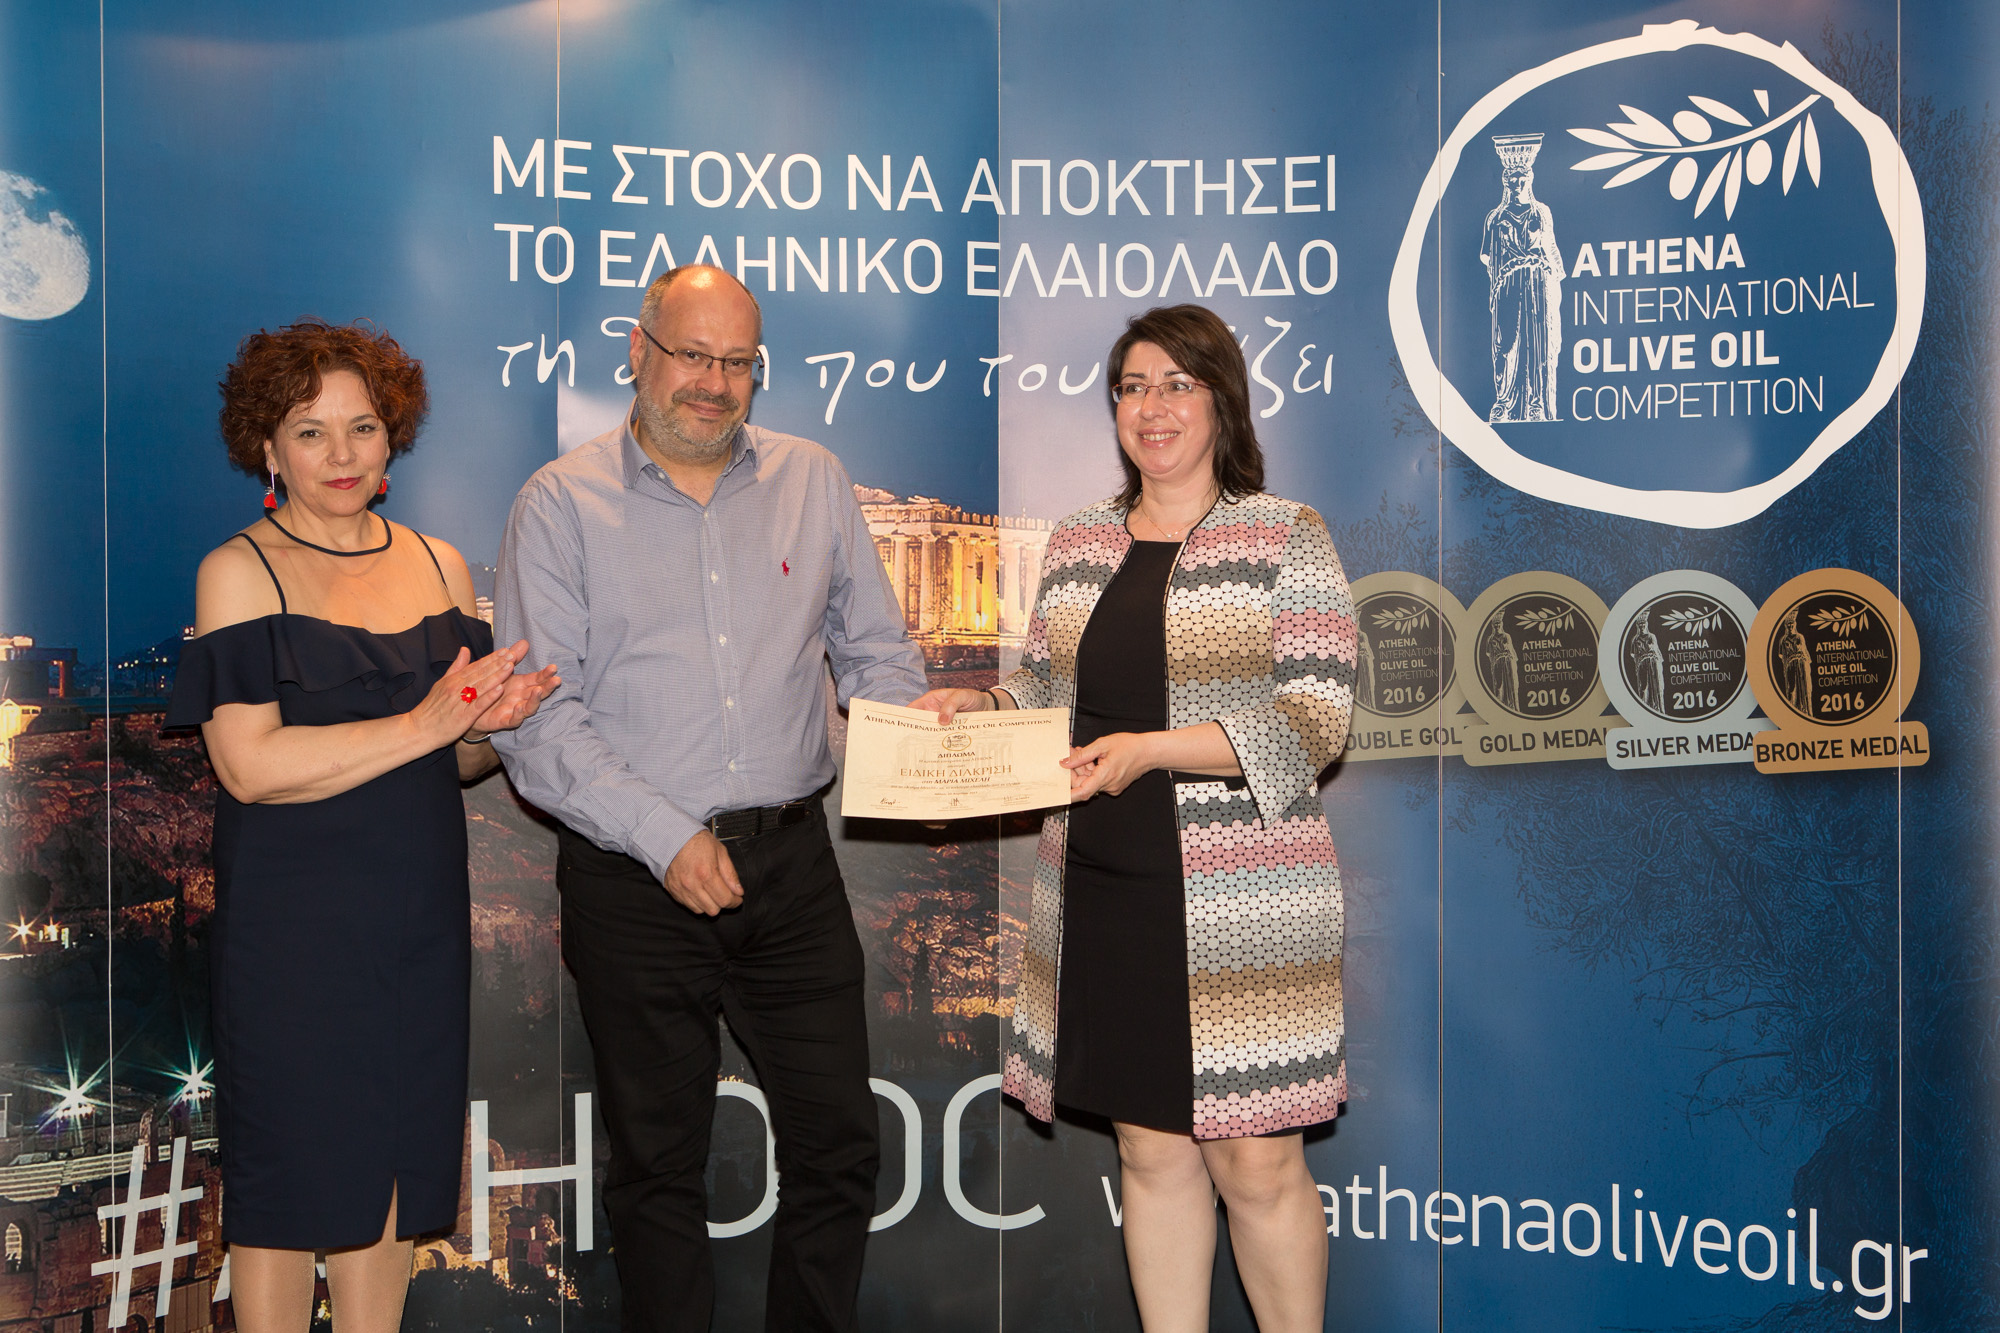 ATHIOOC 2017 Award Ceremony 2017